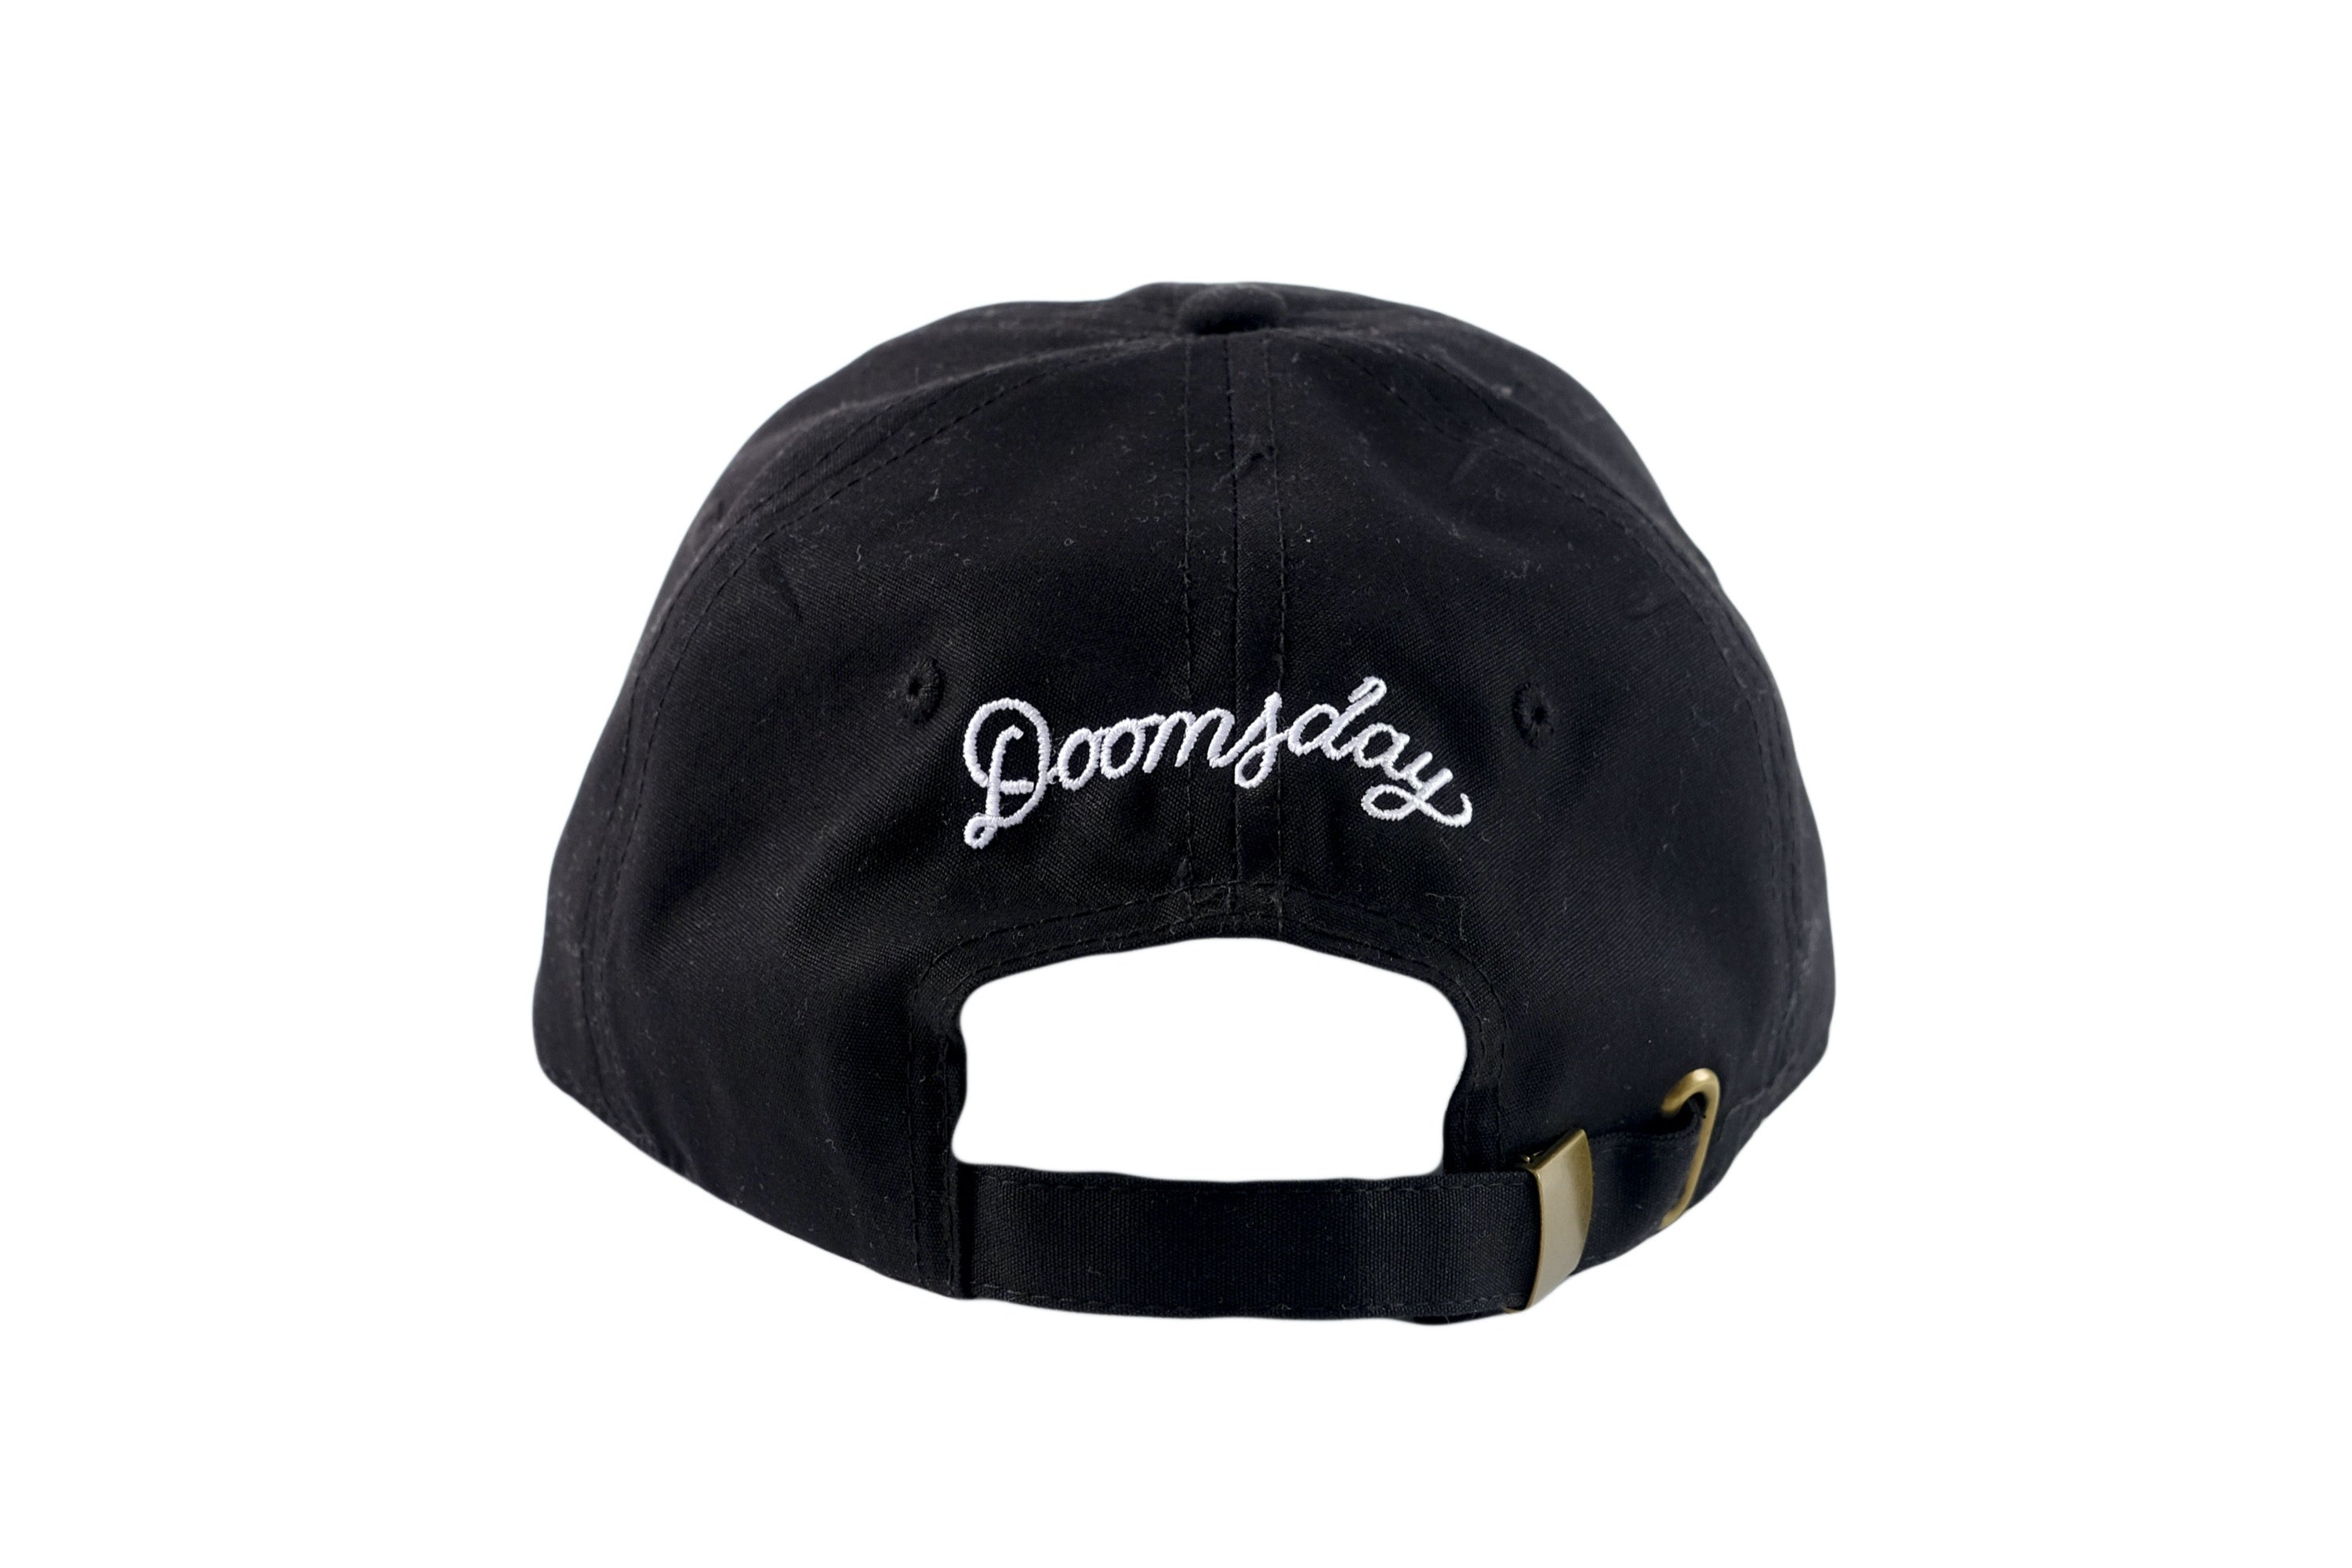 Bonsai Black Dad cap